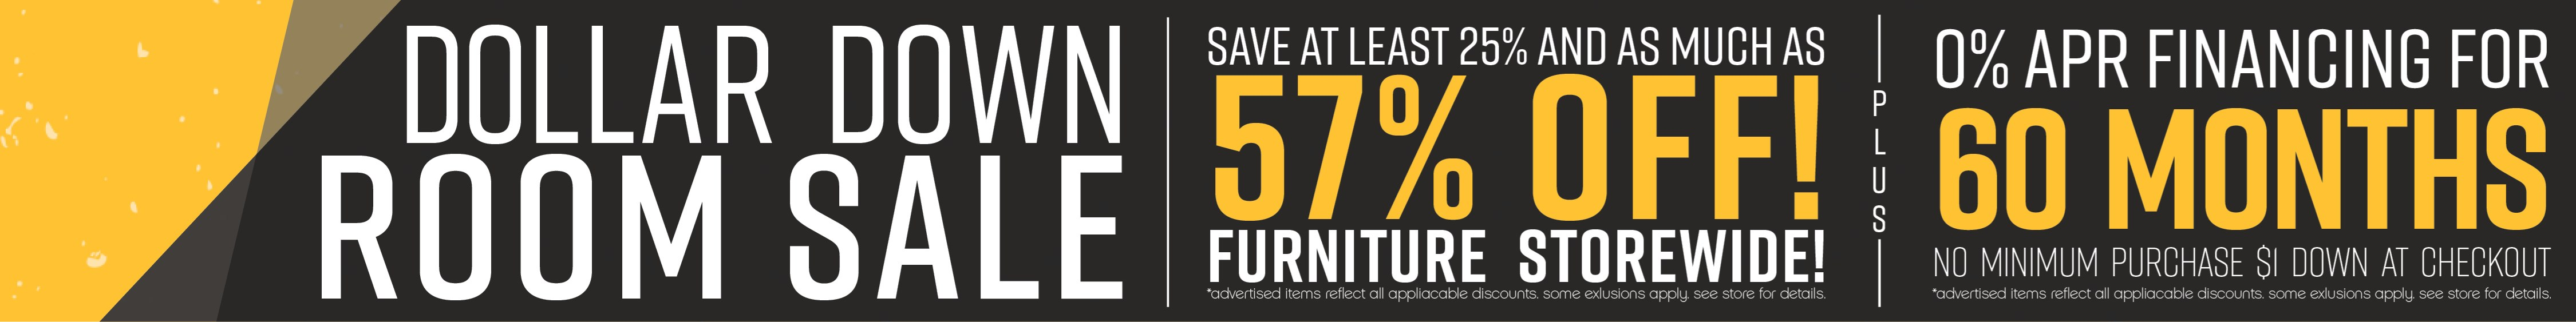 Furniture & ApplianceMart Dollar Down Sale